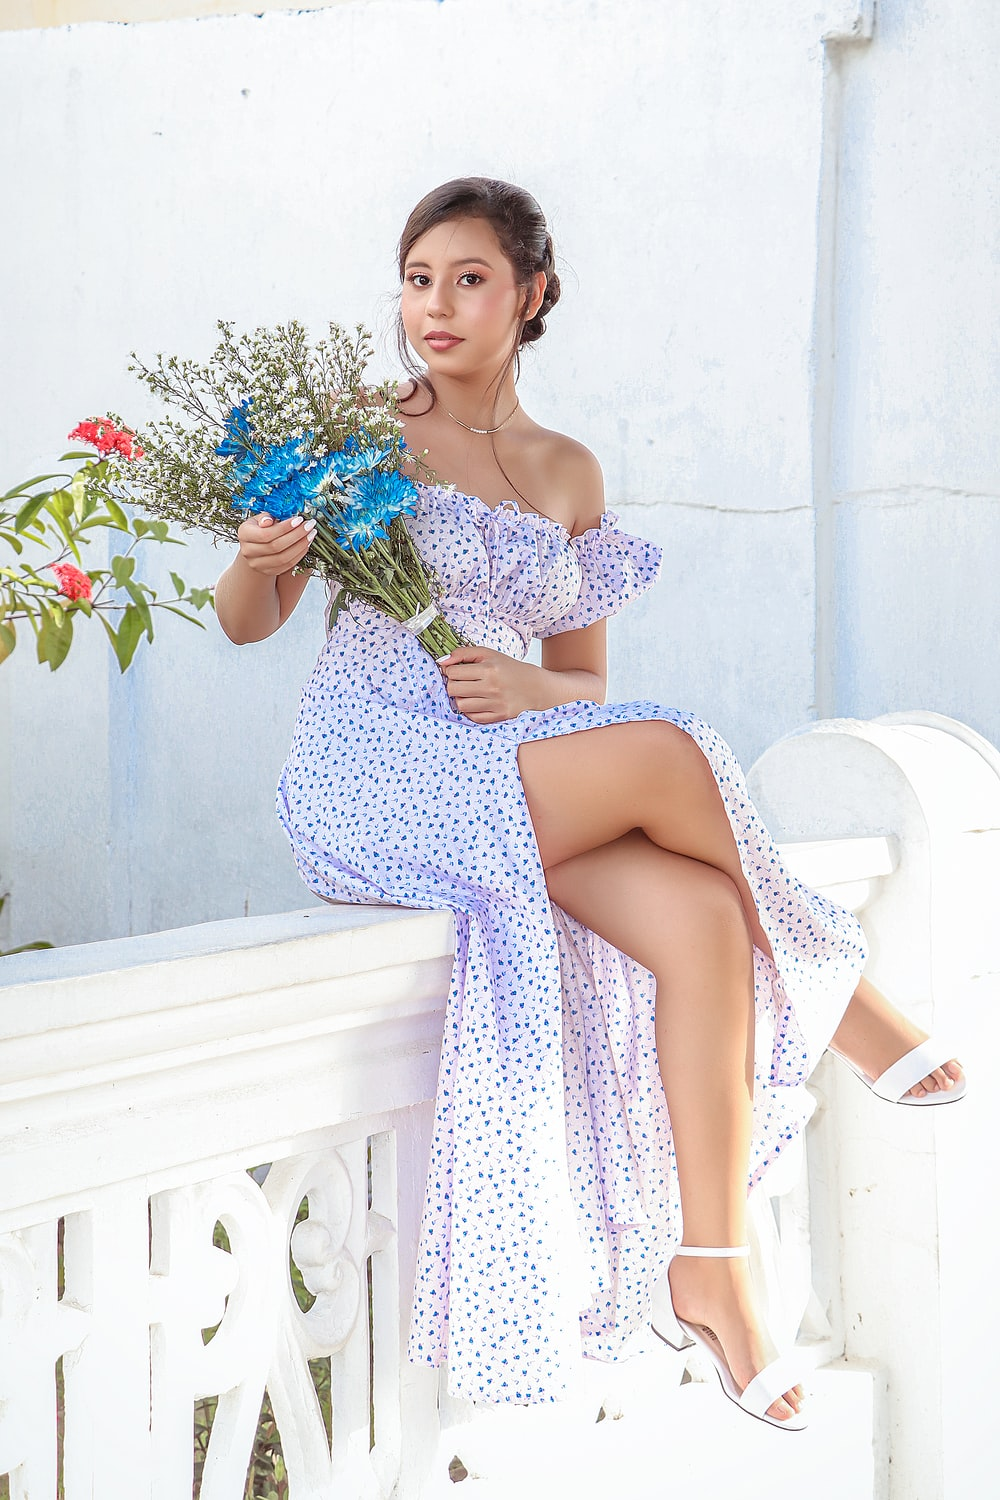 woman in white and black polka dot spaghetti strap dress holding blue flowers